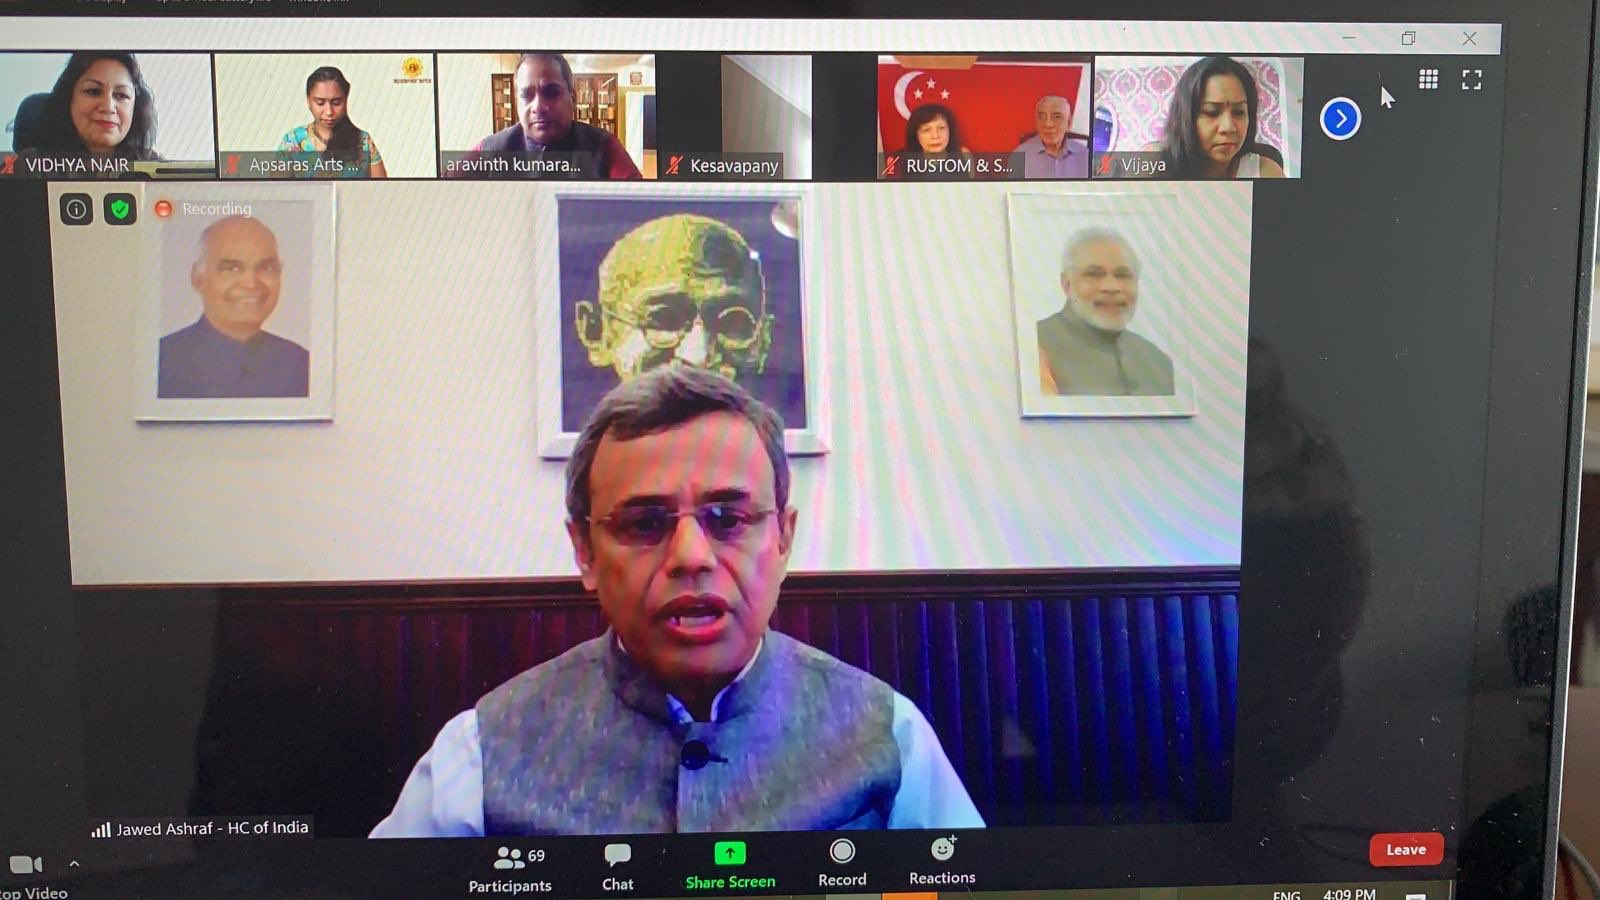 As part of a series of webinars during the #InternationalYogaDay2020 High Commissioner  @JawedAshraf5  spoke in 90-minute session on why India's cultural heritage has enduring value and a growing following globally.